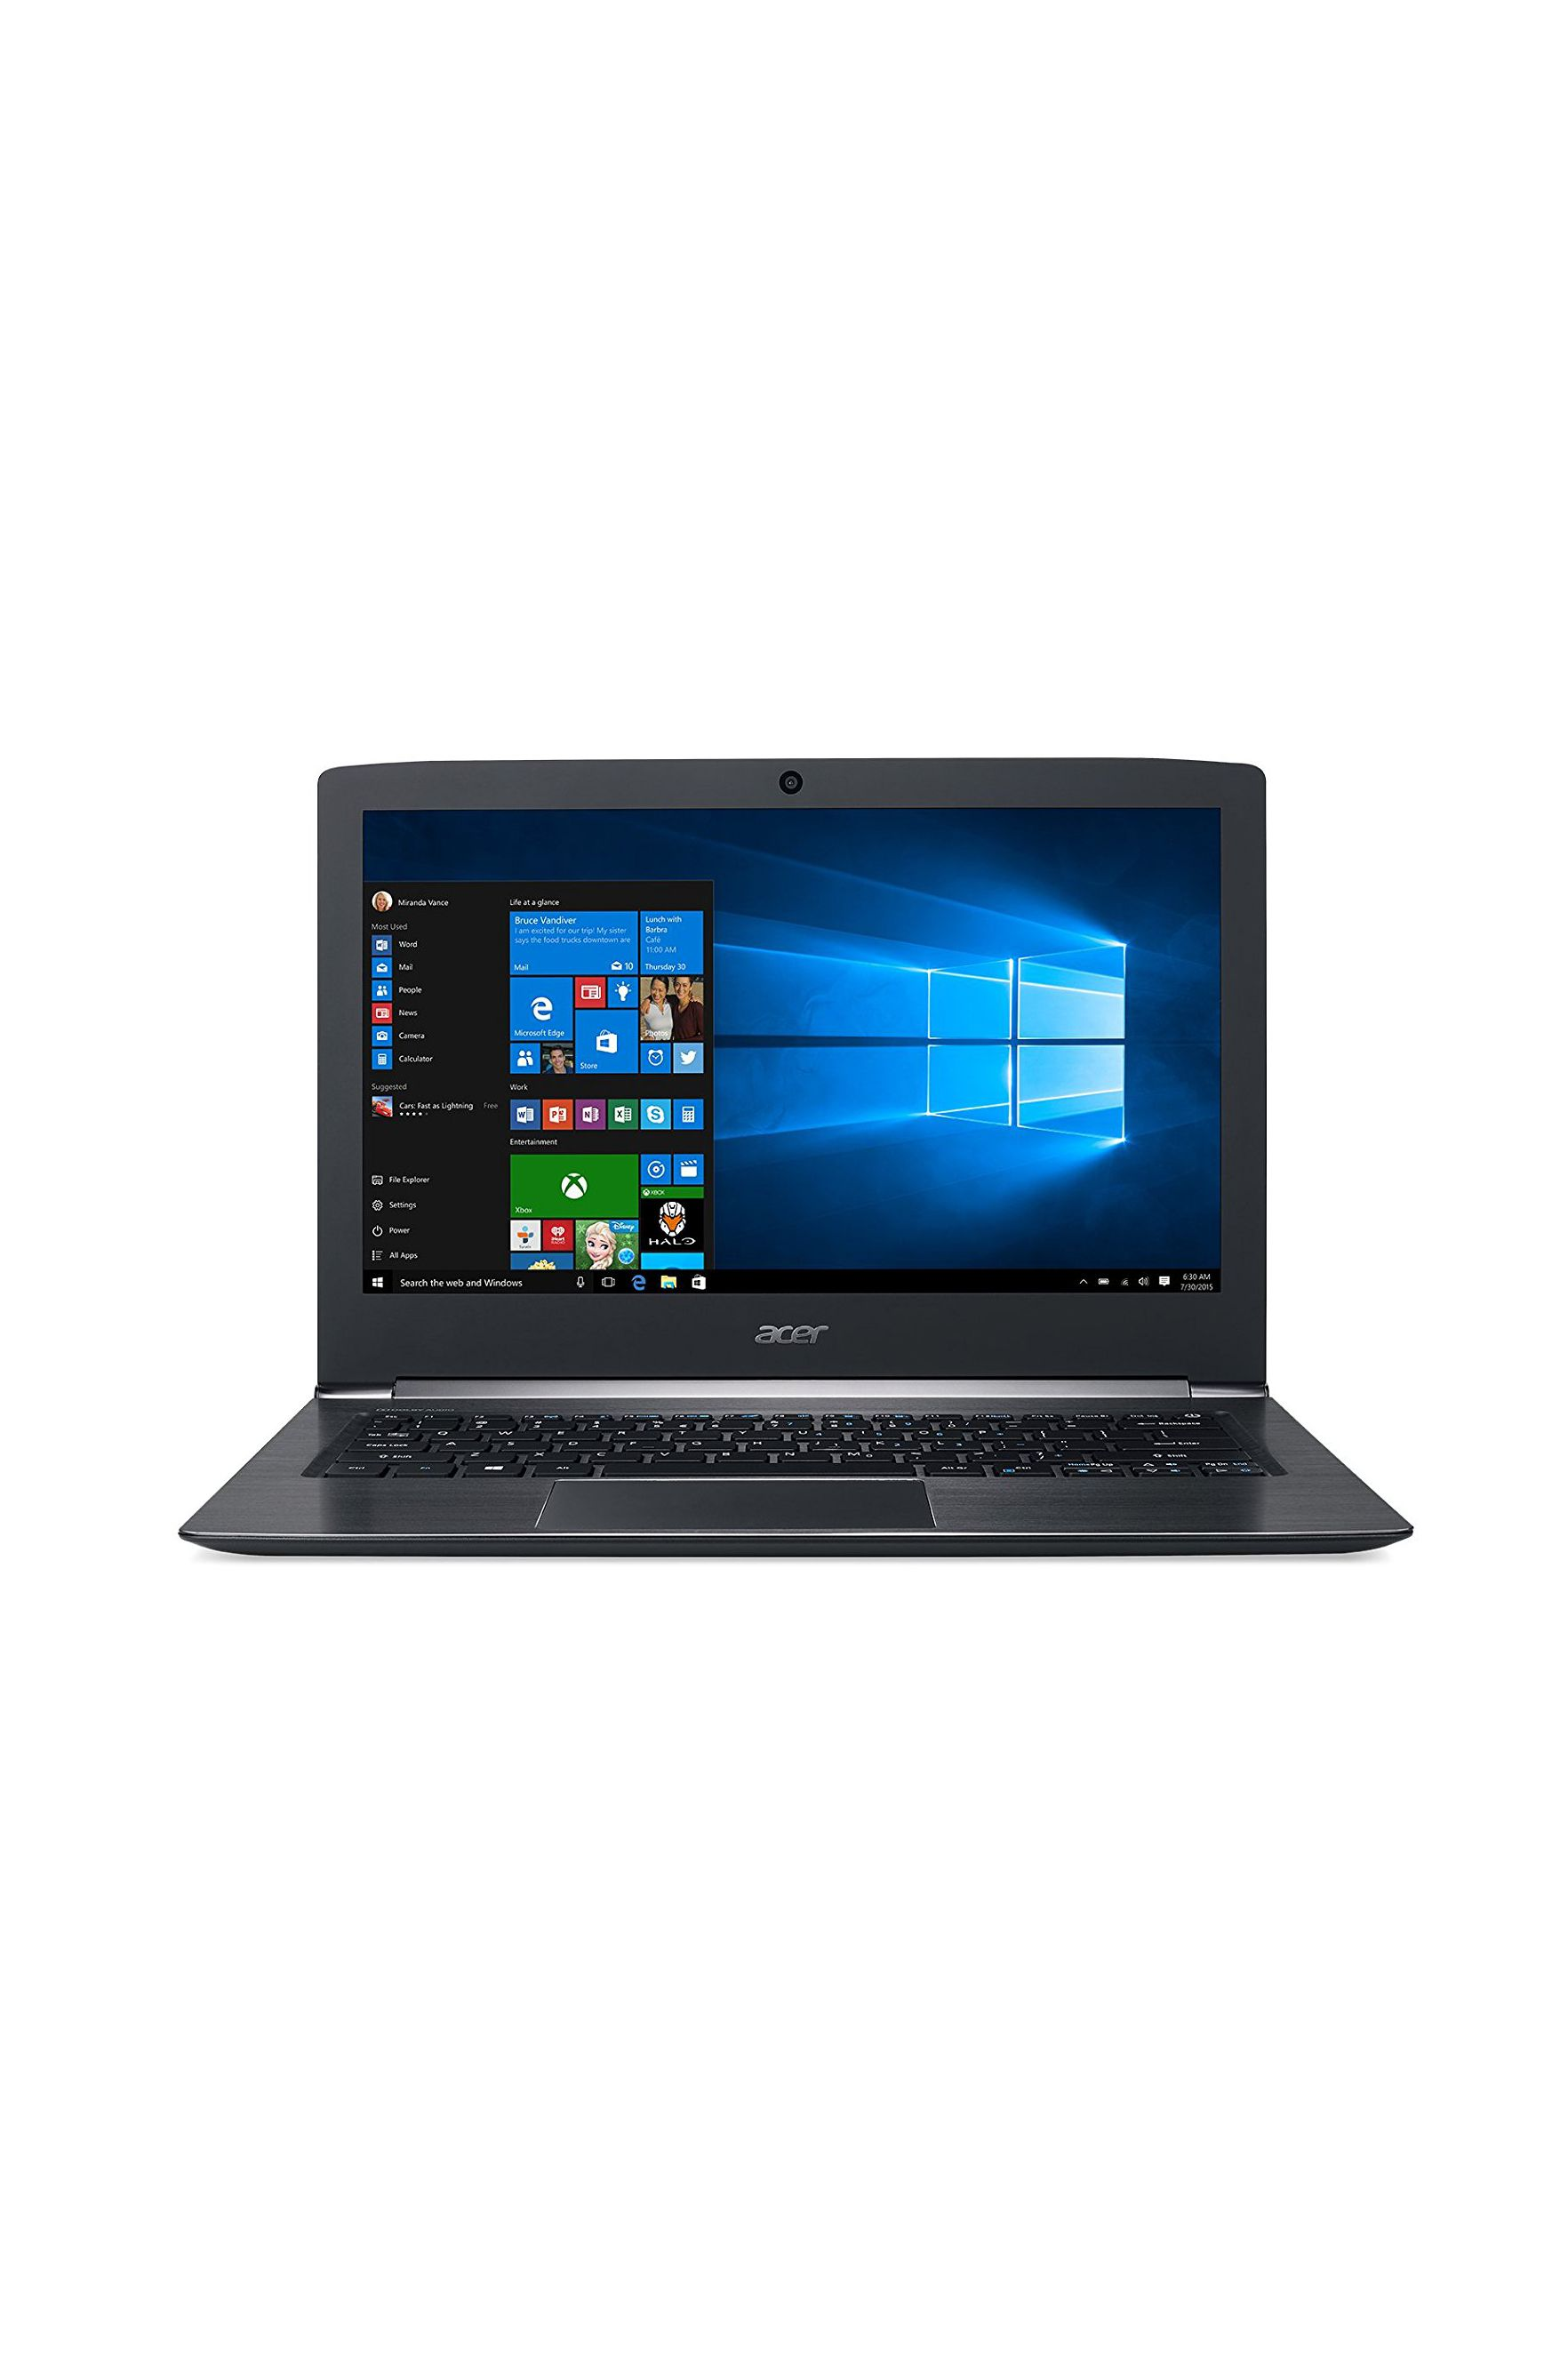 11 Best Laptop Reviews 2018 - Top Rated Laptop Computer